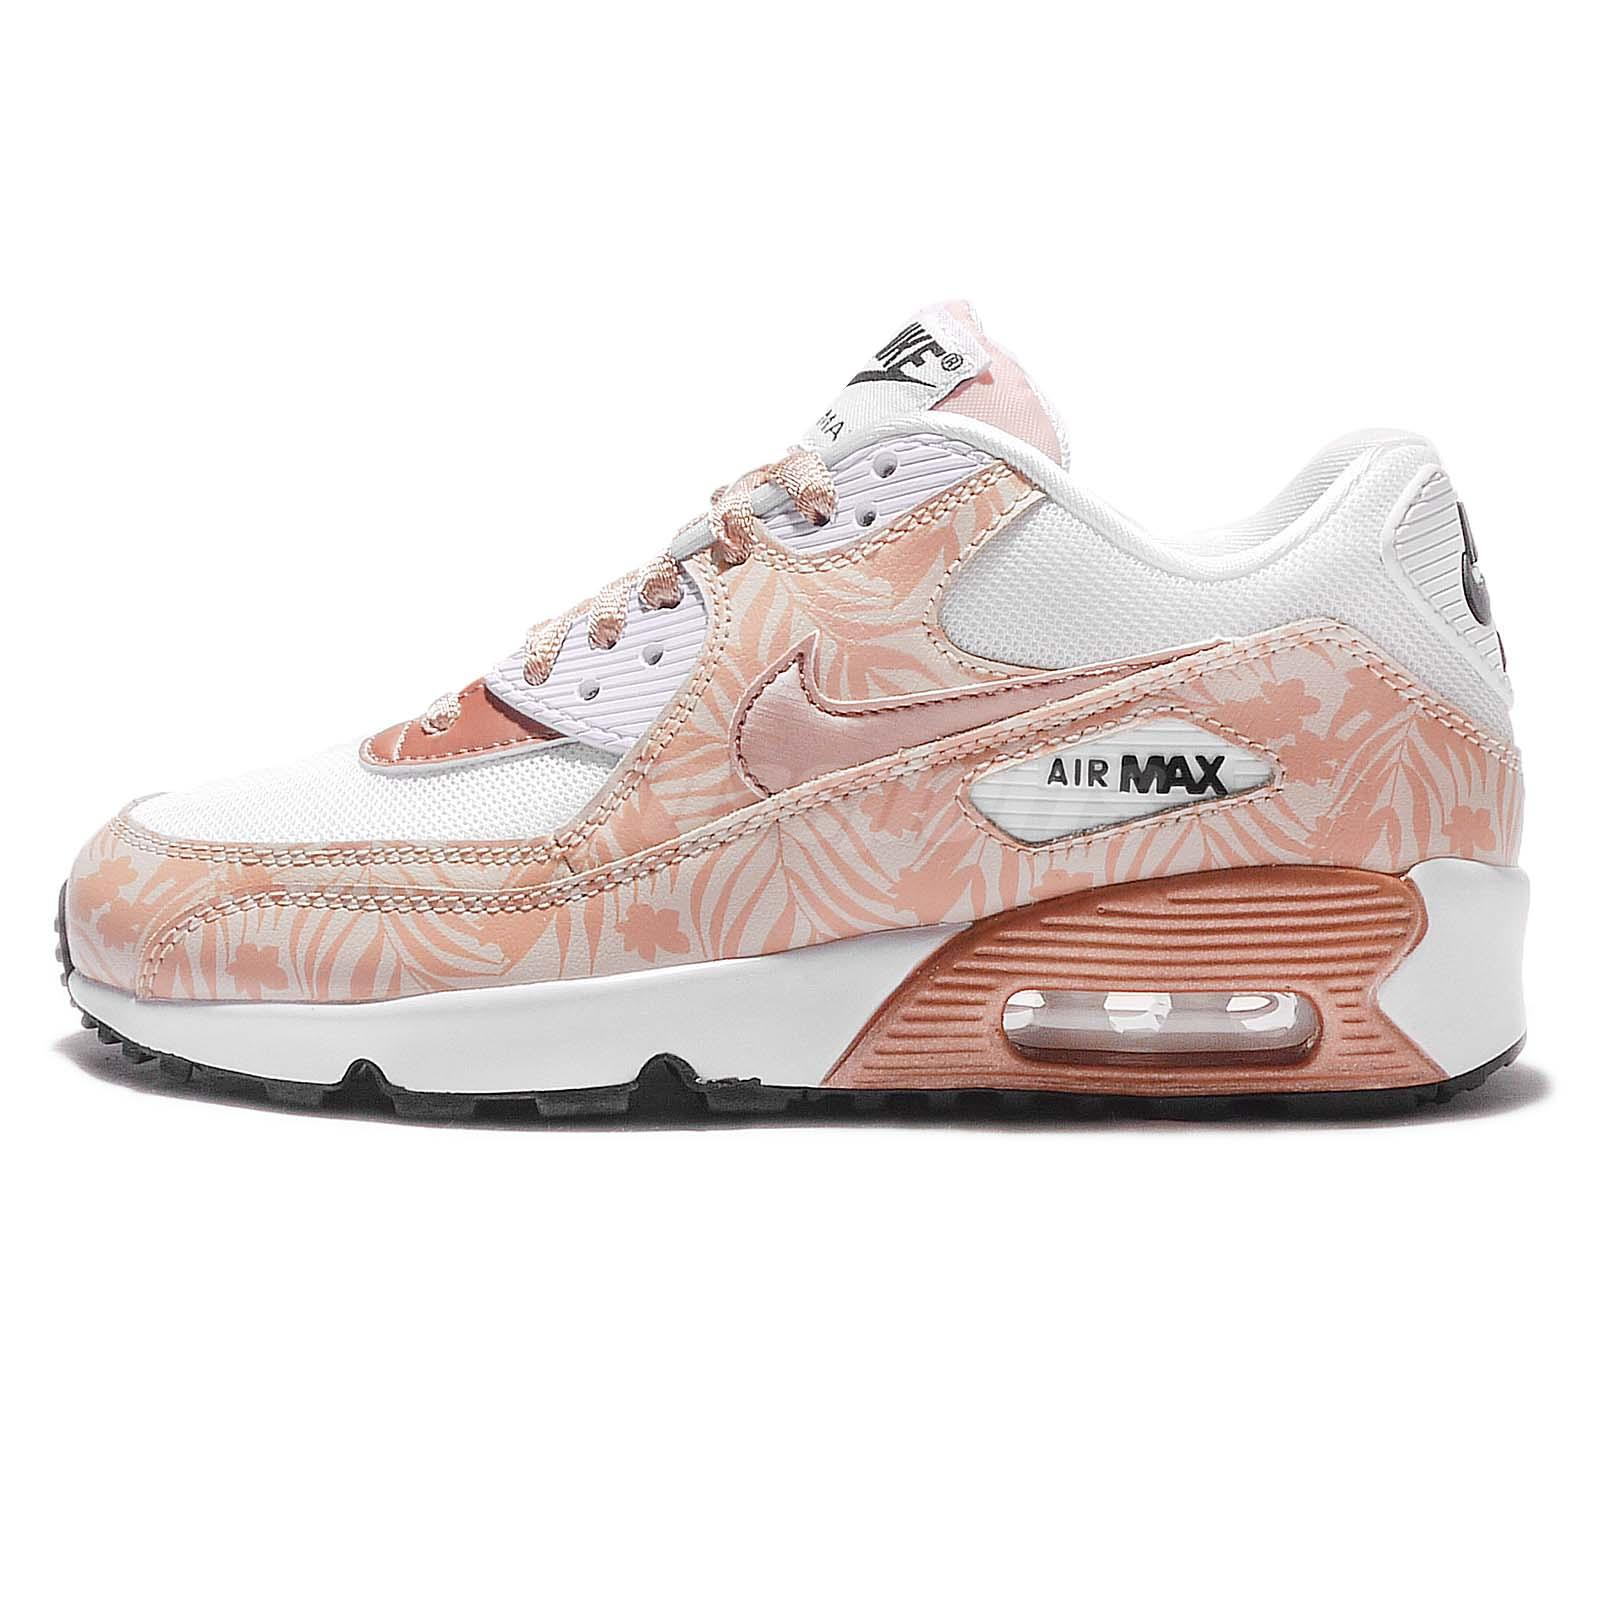 nike air max 90 print mesh gs metallic red bronze women. Black Bedroom Furniture Sets. Home Design Ideas